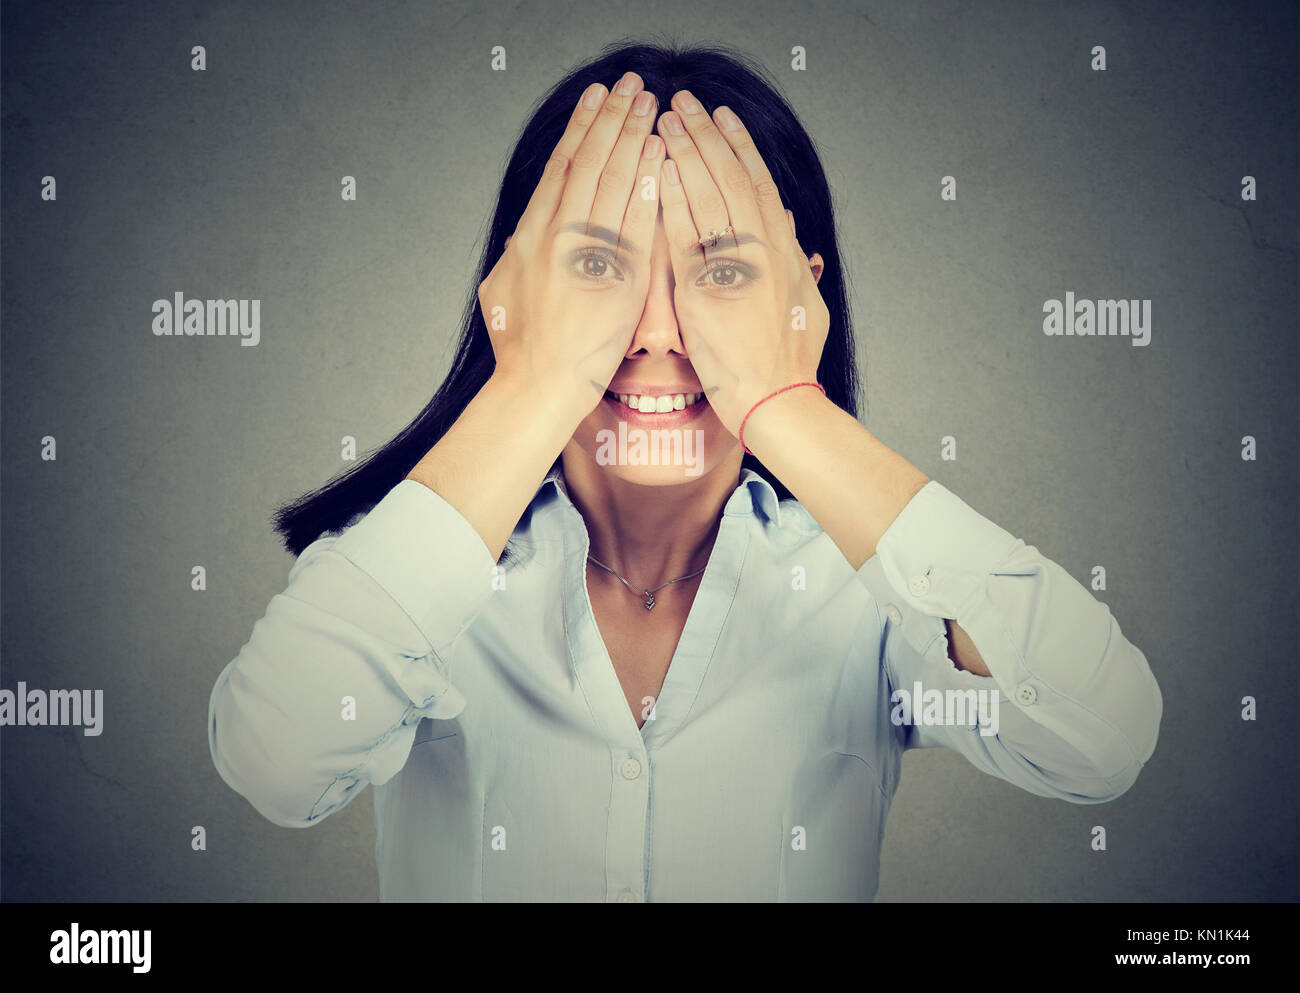 Portrait of a smiling woman covering her eyes - Stock Image